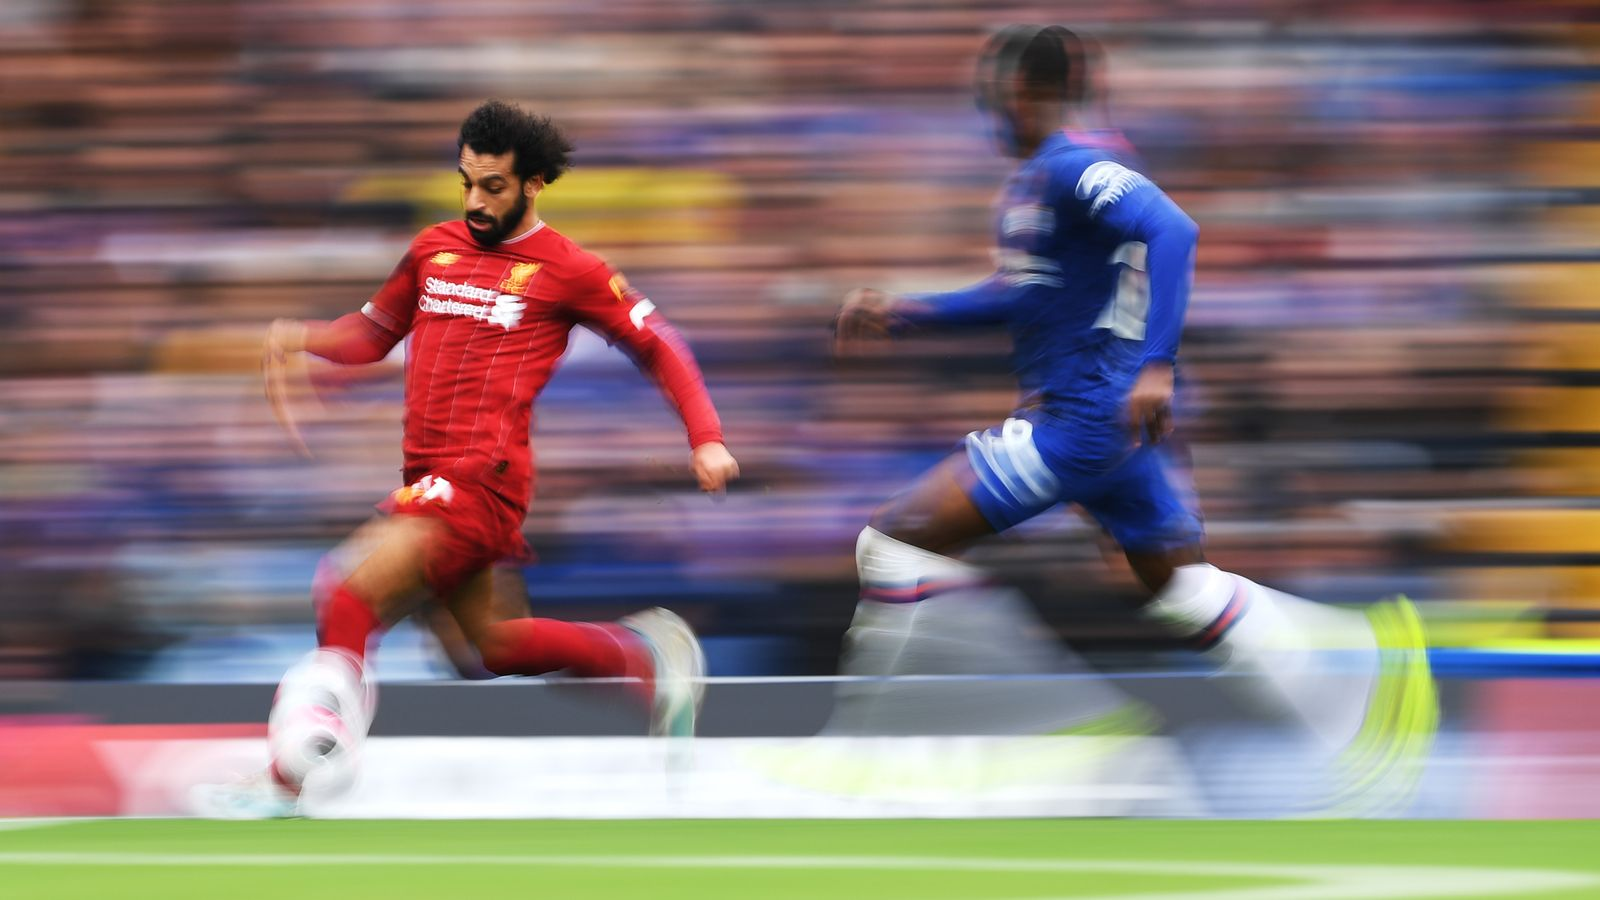 Premier League running stats this season revealed